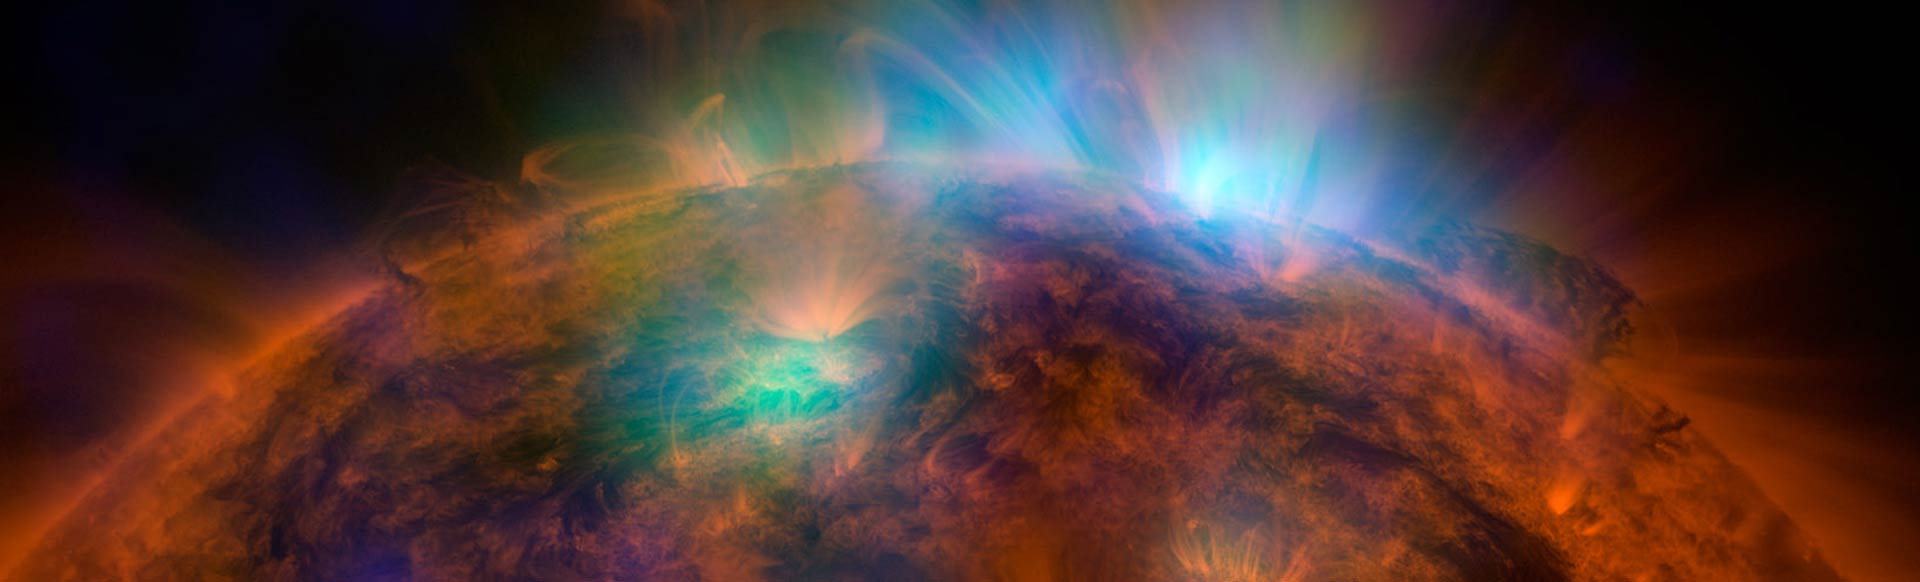 Close-up of the Sun